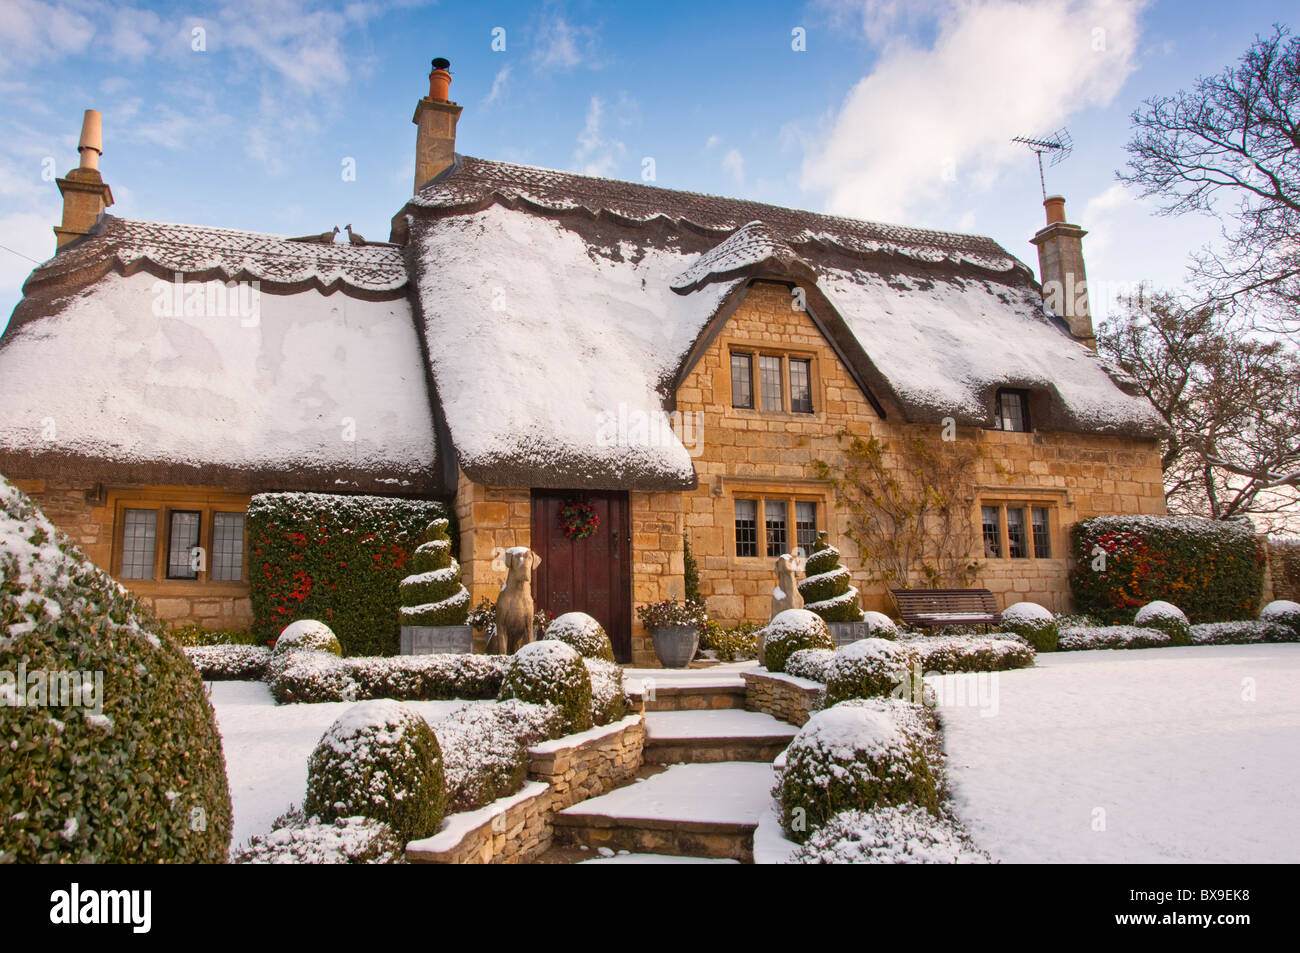 A Thatched Cottage Covered In Snow On The Edge Of The